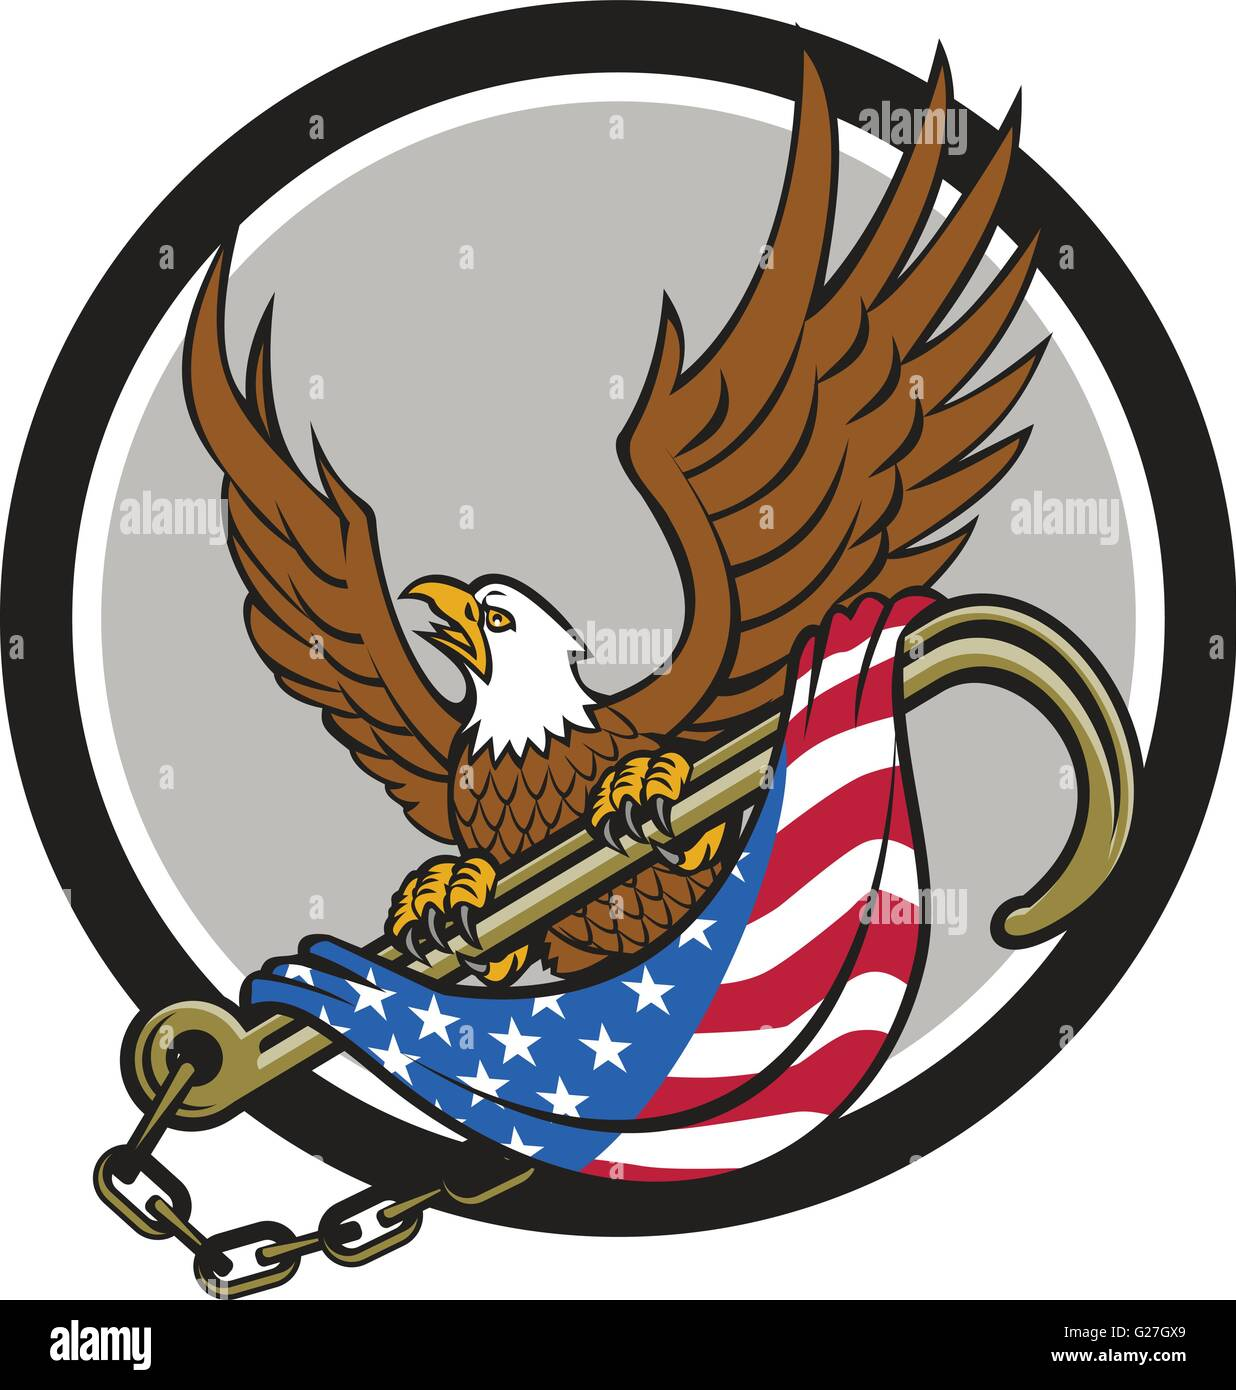 Illustration of an american bald eagle looking to the side clutching with its talon a towing j hook with chains - Stock Image